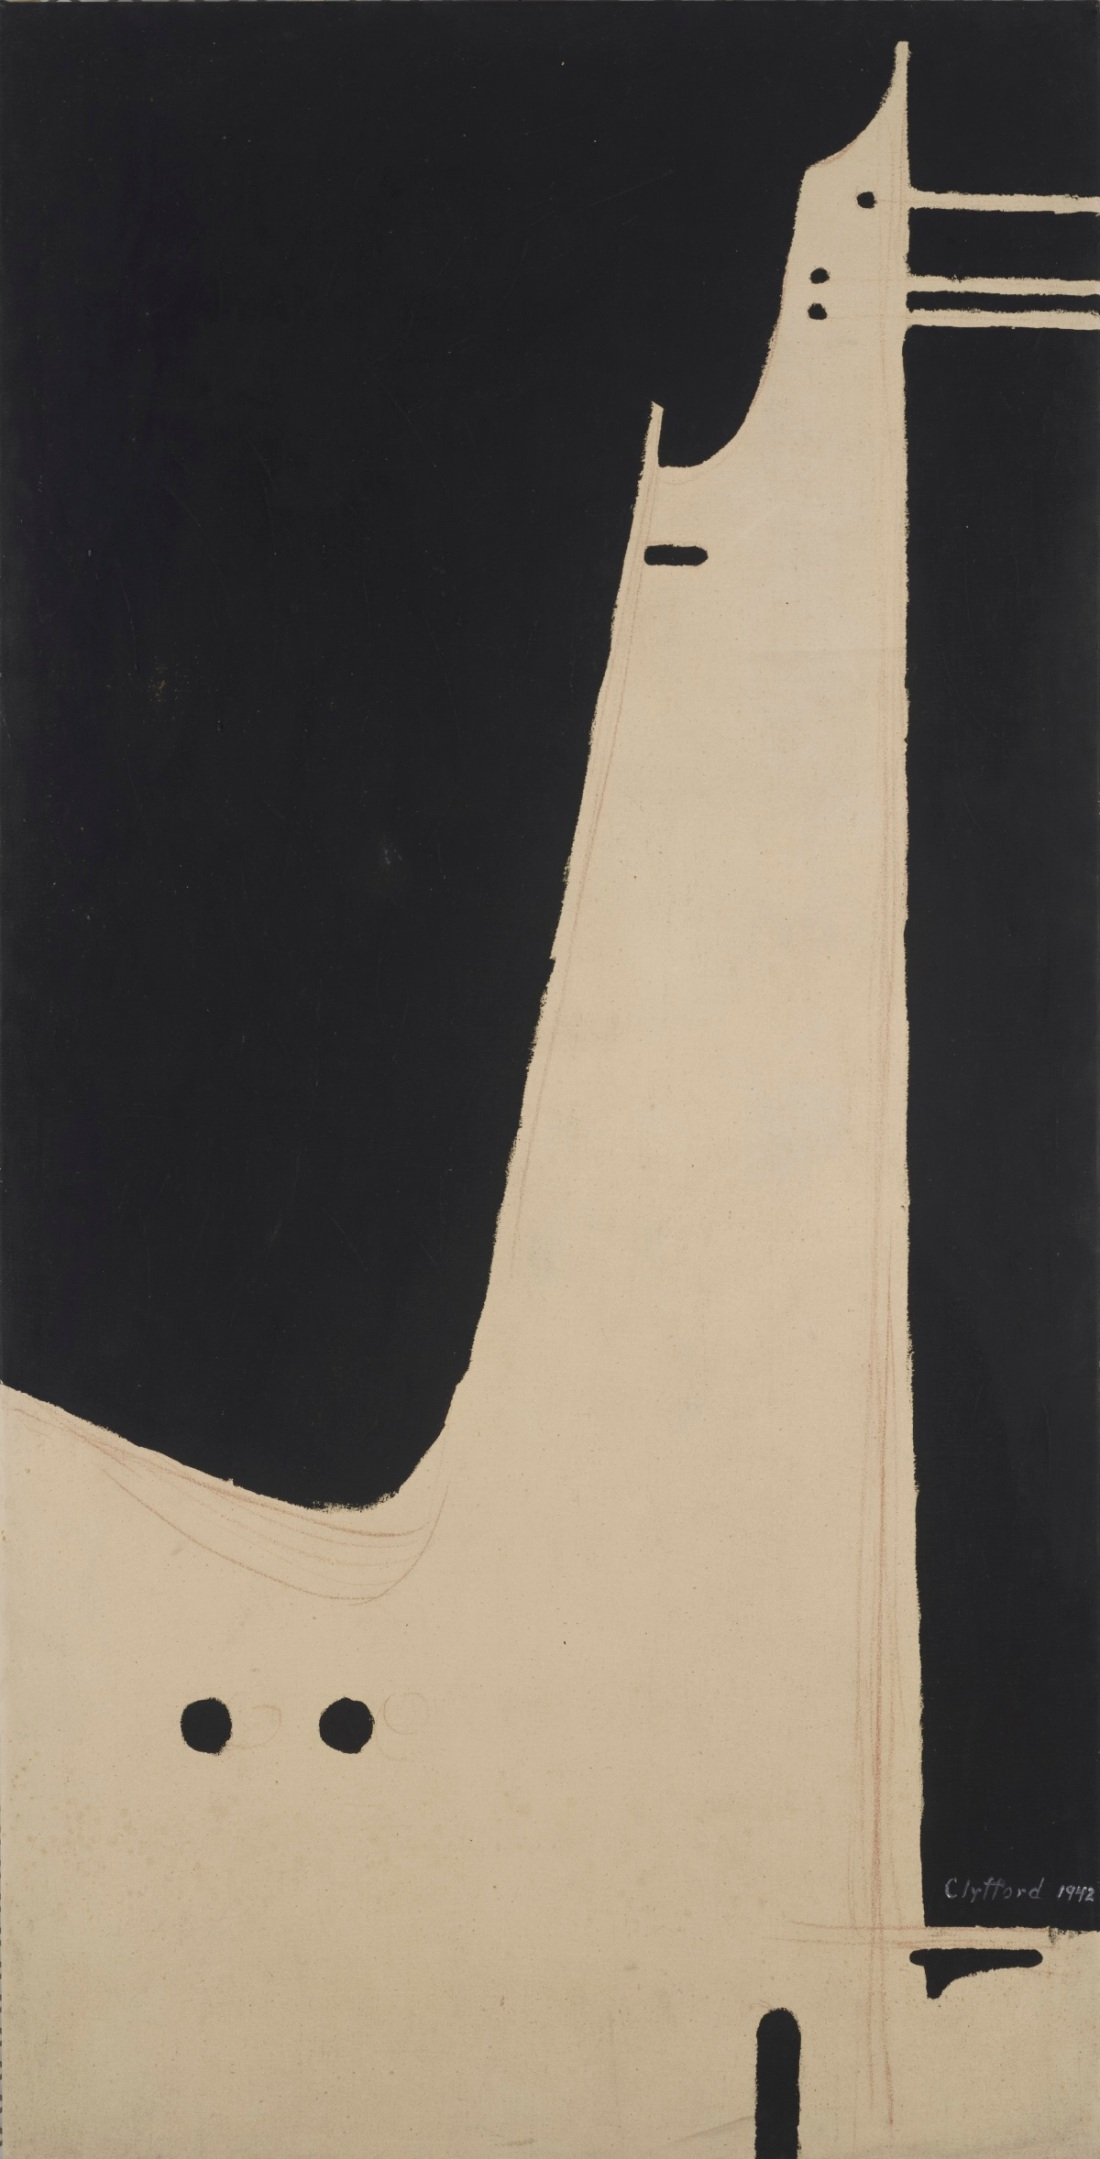 Clyfford Still, PH-334, 1942.